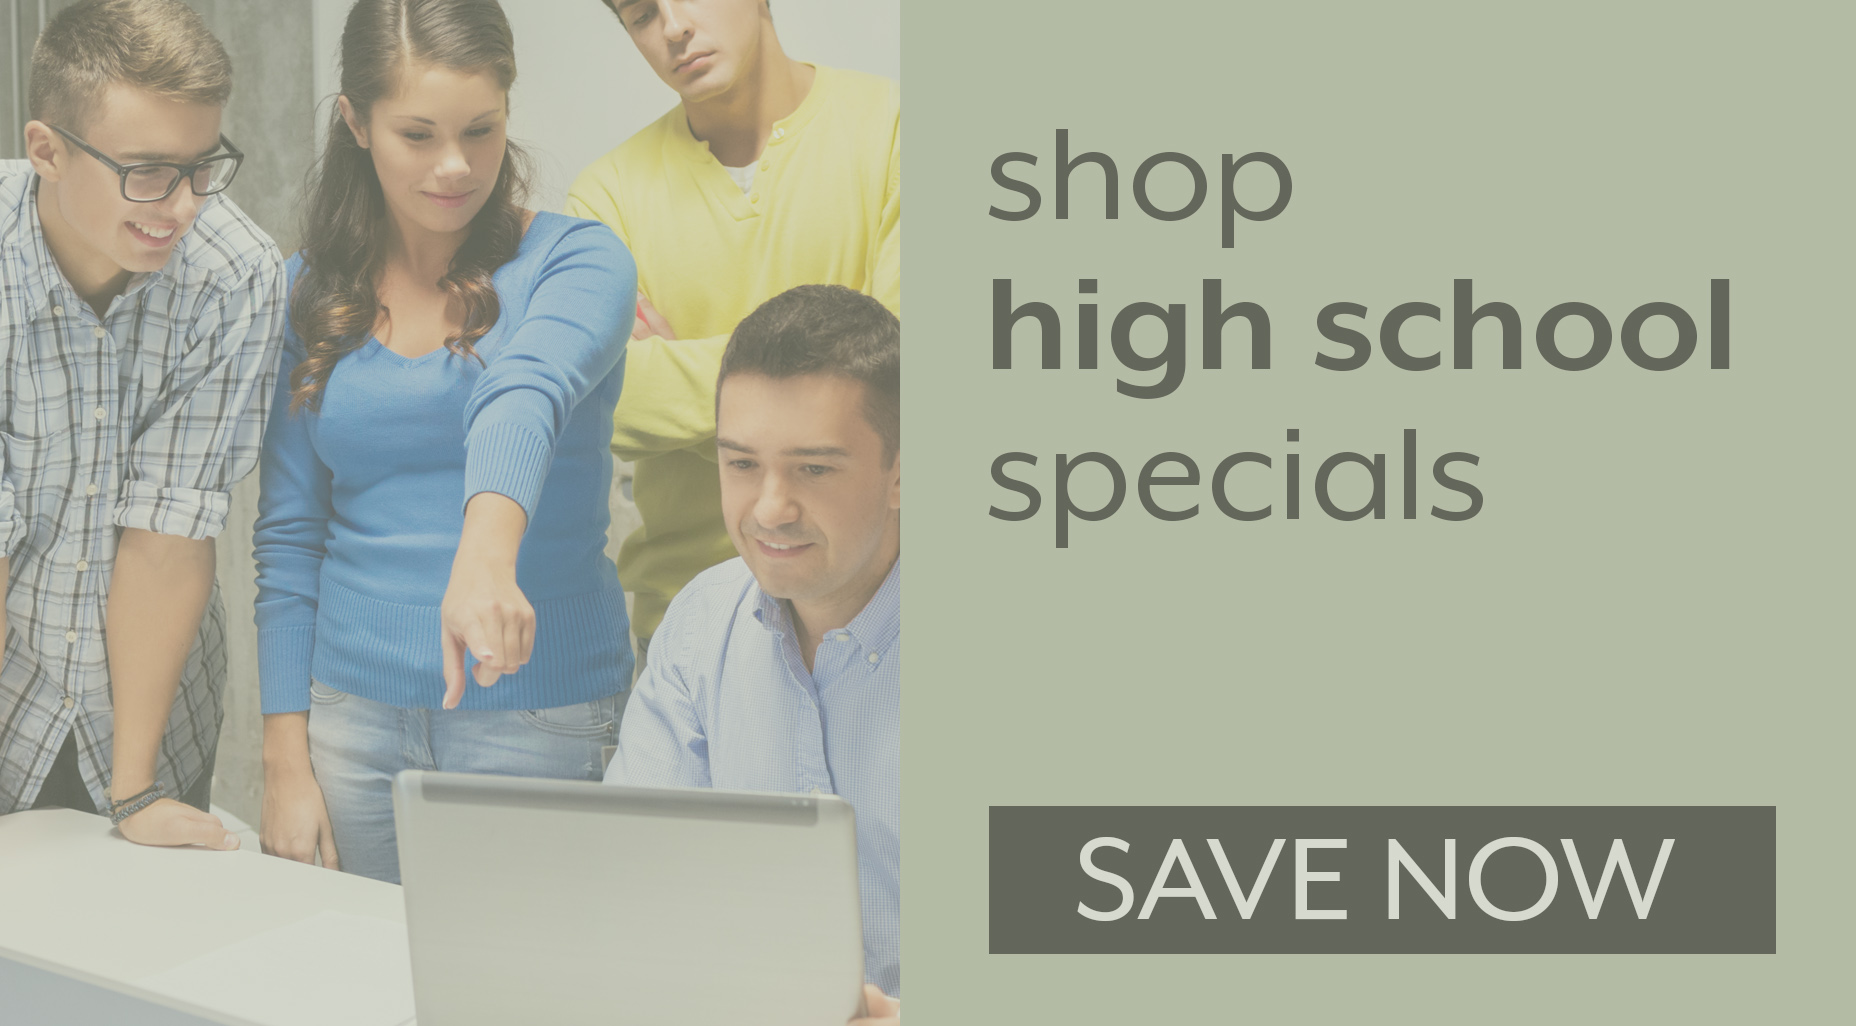 SAVE NOW ON HIGH SCHOOL SPECIALS